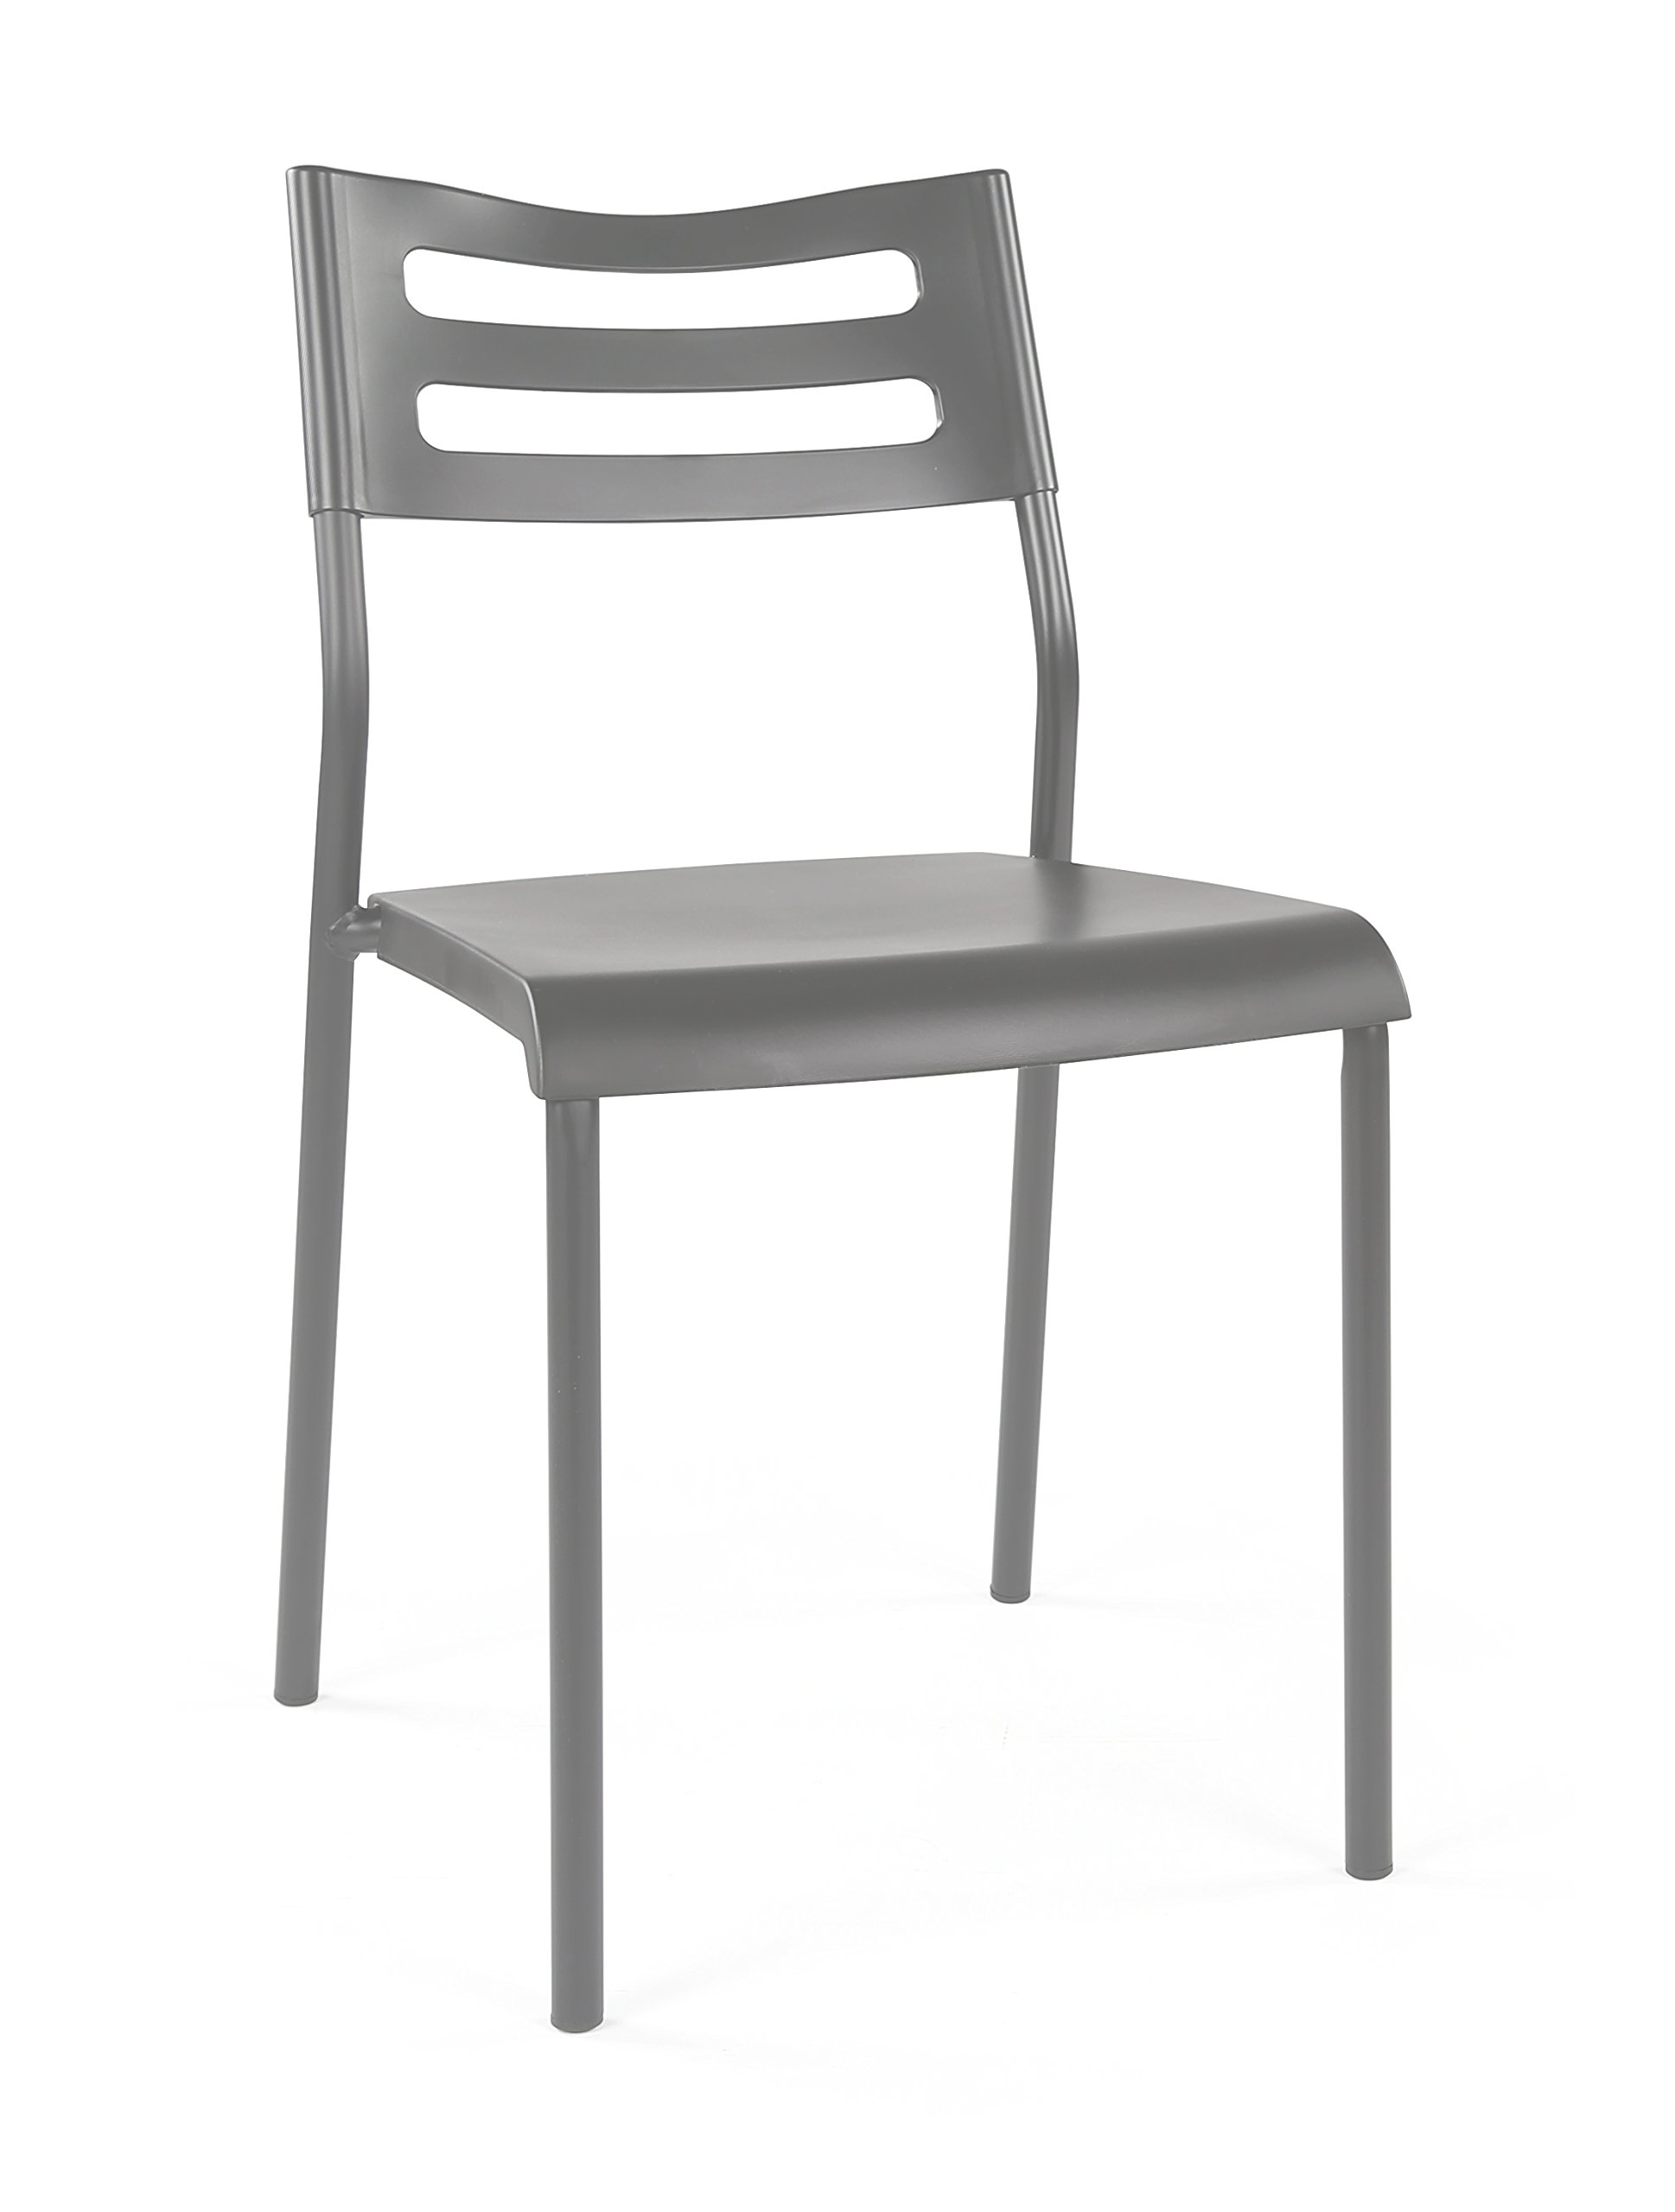 Tot Tutors LT961 Chair for Desks and Kitchen Dining Tables, Grey